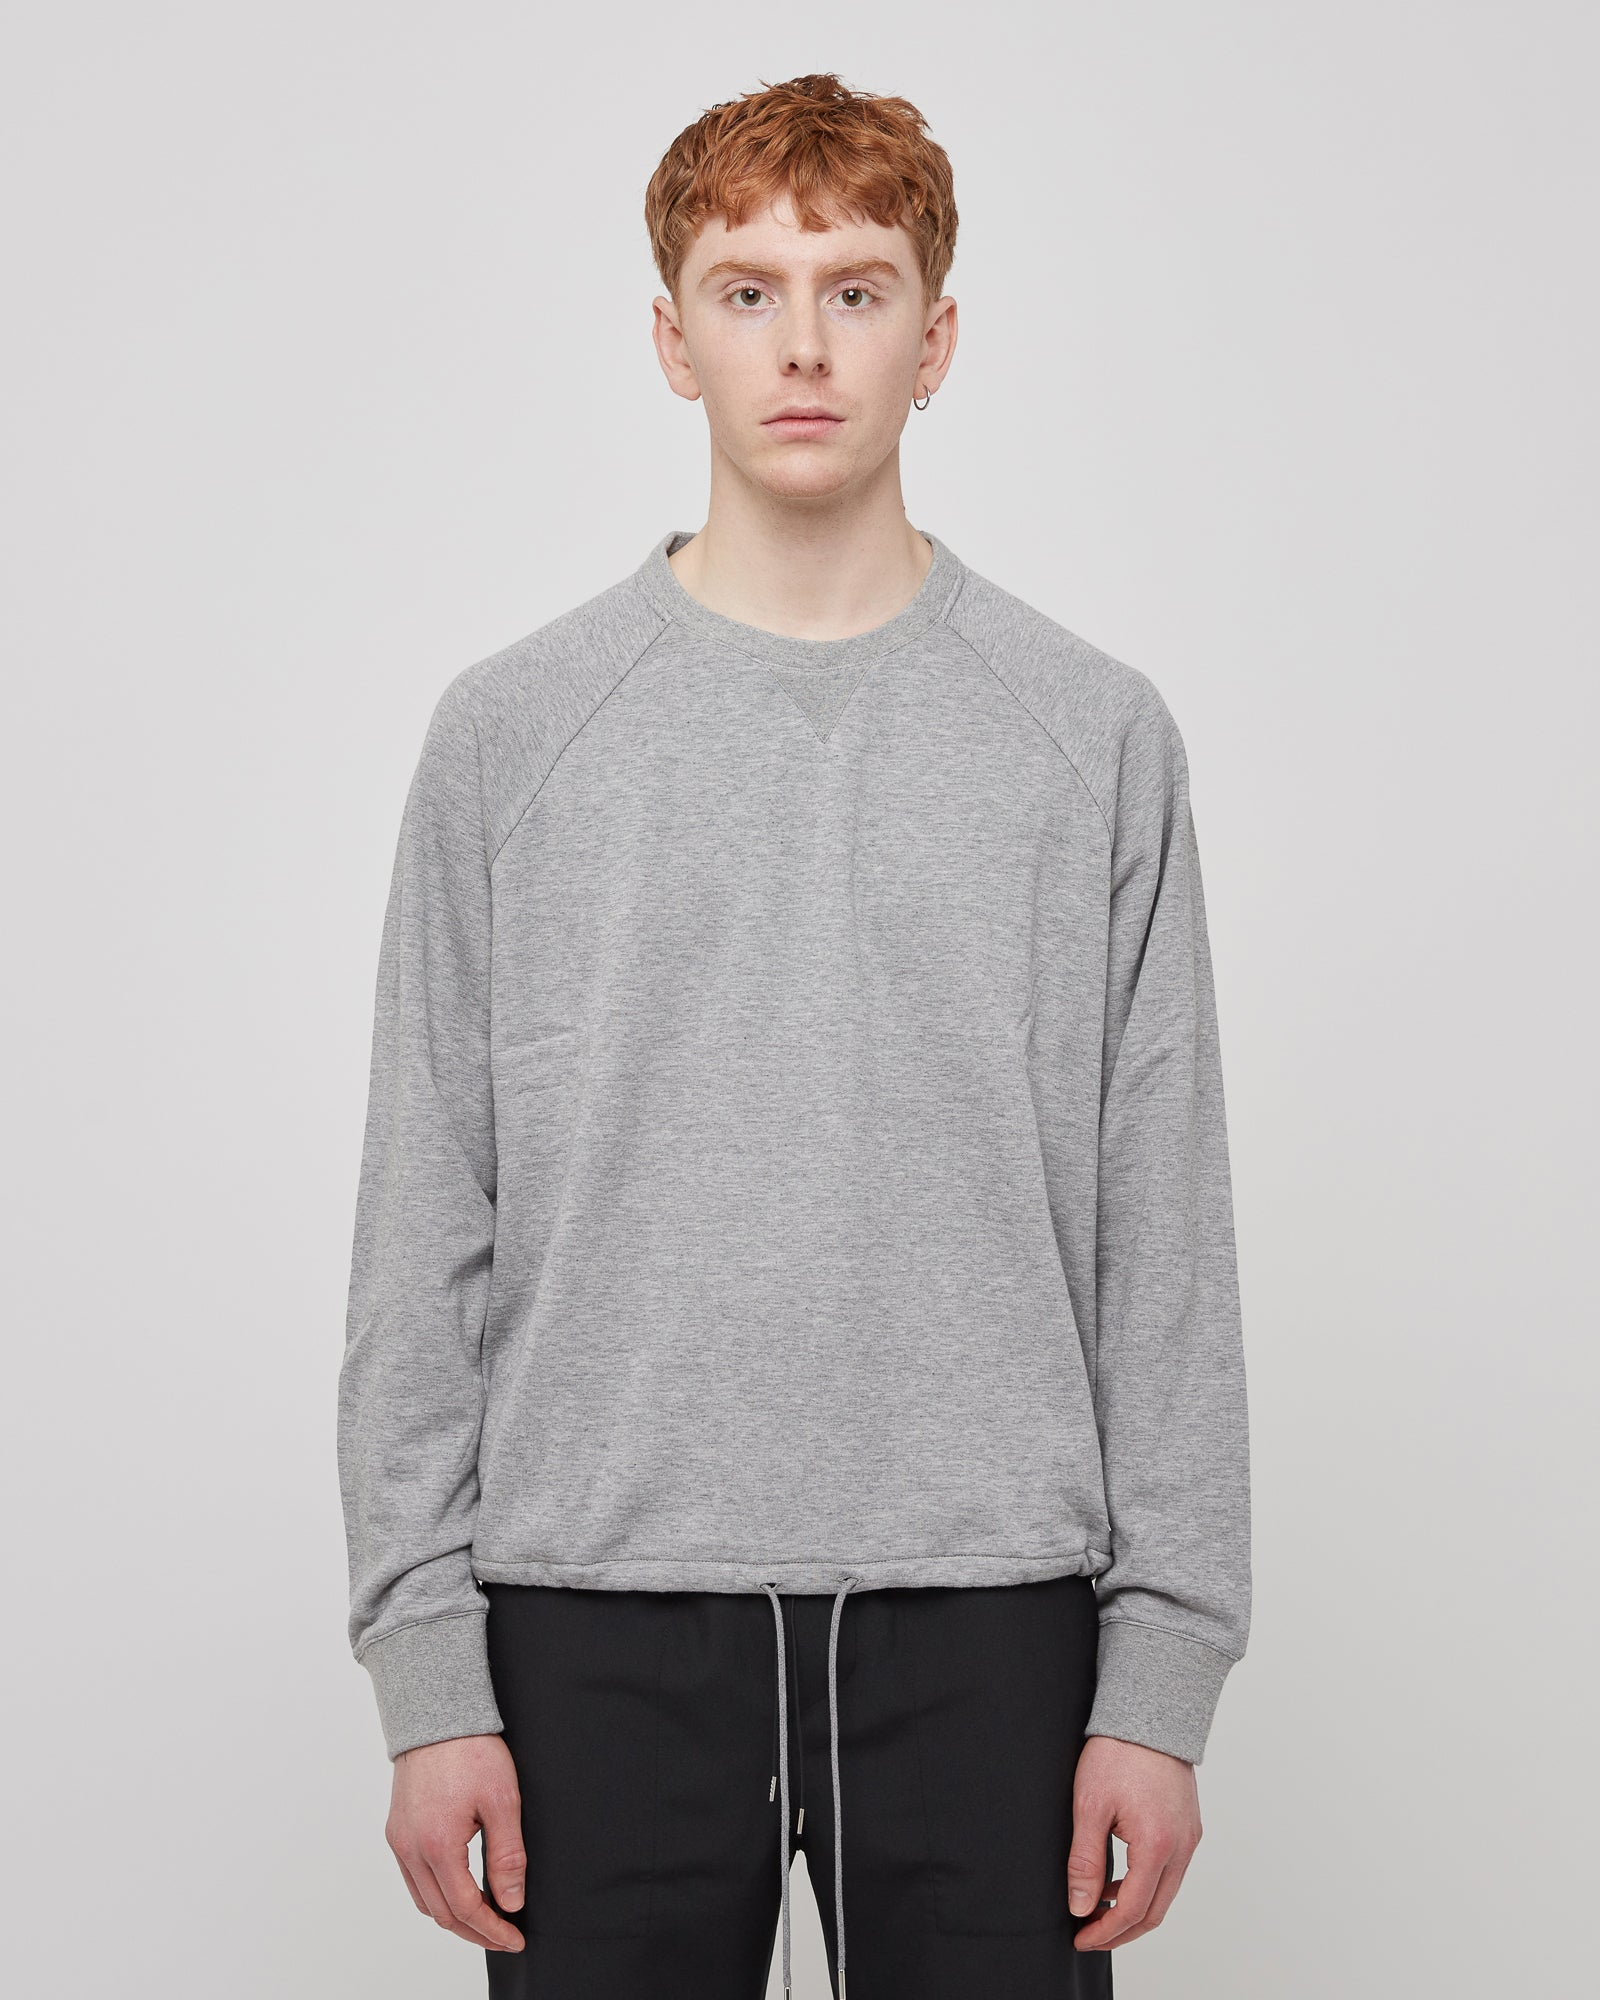 Crewneck Drawstring Sweatshirt in Light Gray